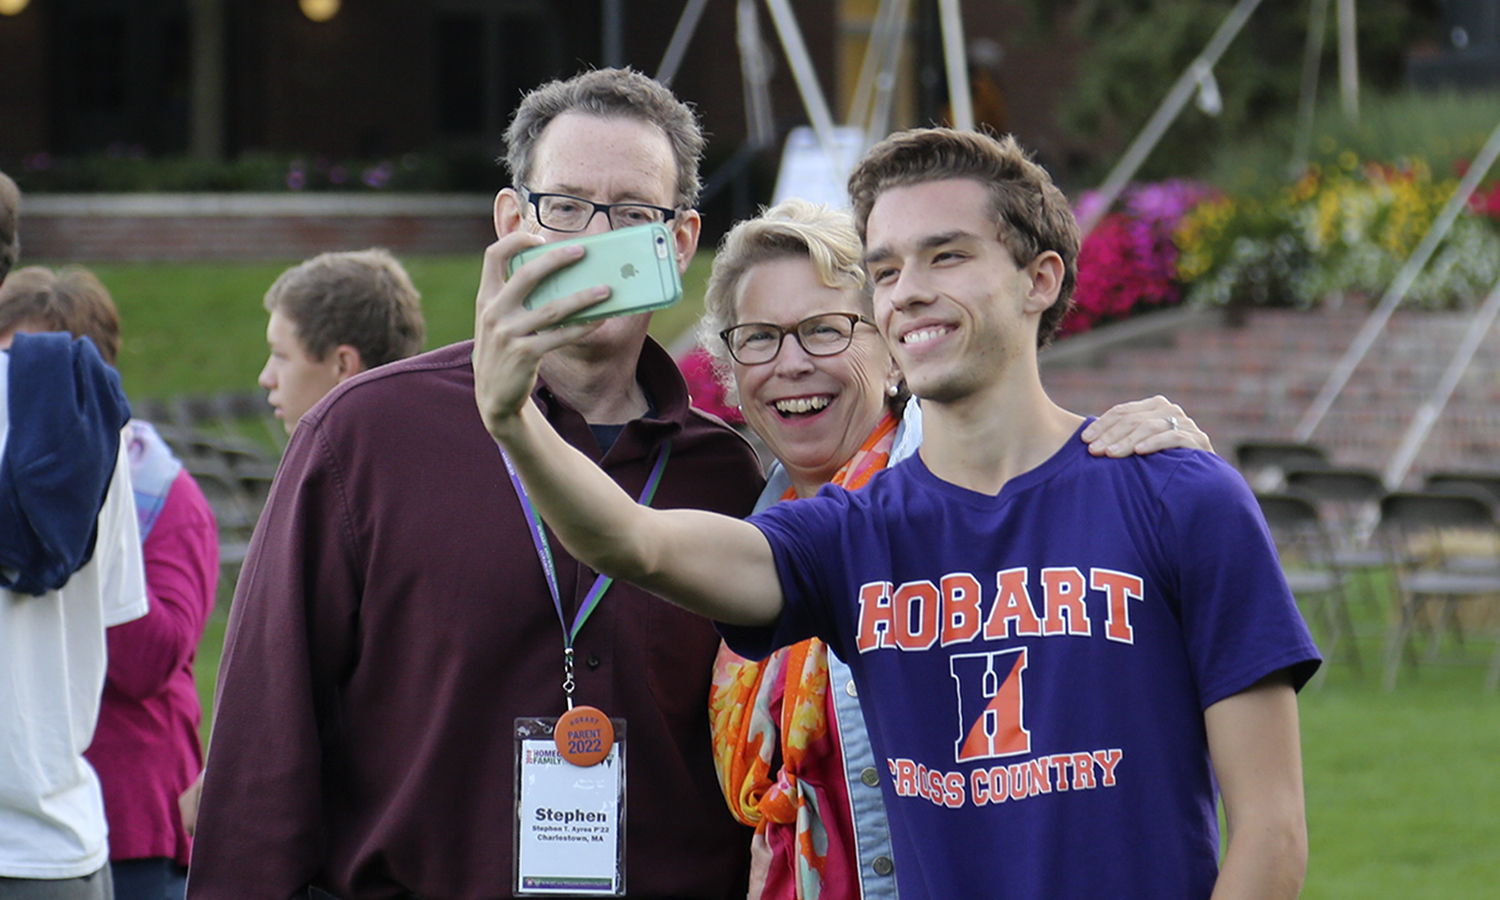 Matthew Ayres 'X takes a selfie with his family at Quadapalooza on Friday night of Homecoming and Family Weekend.